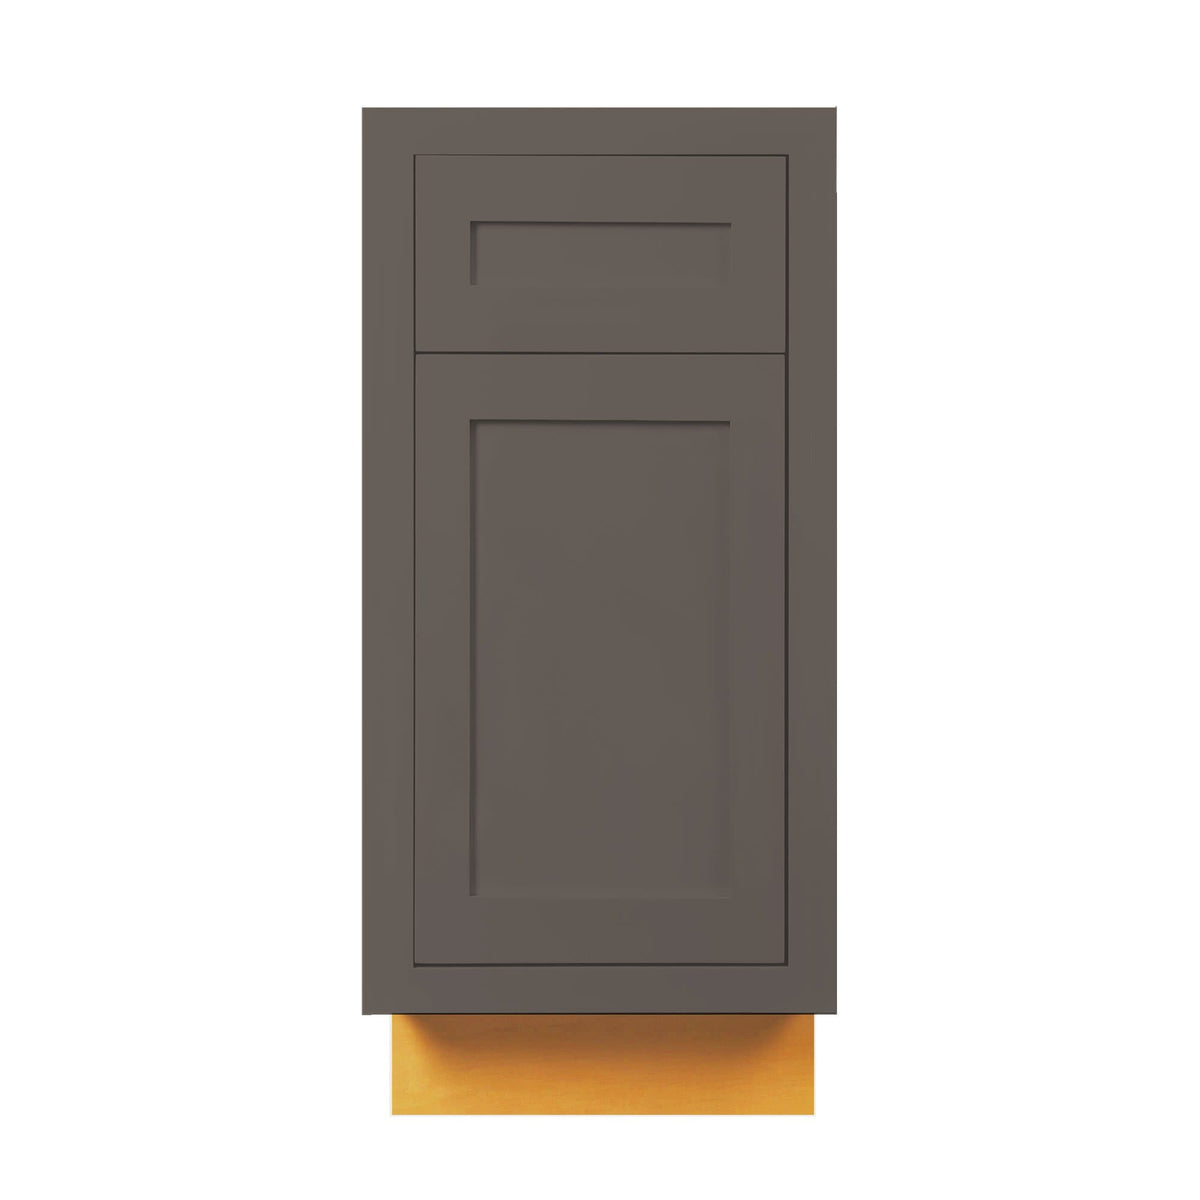 "Base Cabinet Dark Gray Inset Shaker Base Cabinet - Single Door 9"", 12"", 15"", 18"" & 21"" D3B15 Inset Kitchen Cabinets"